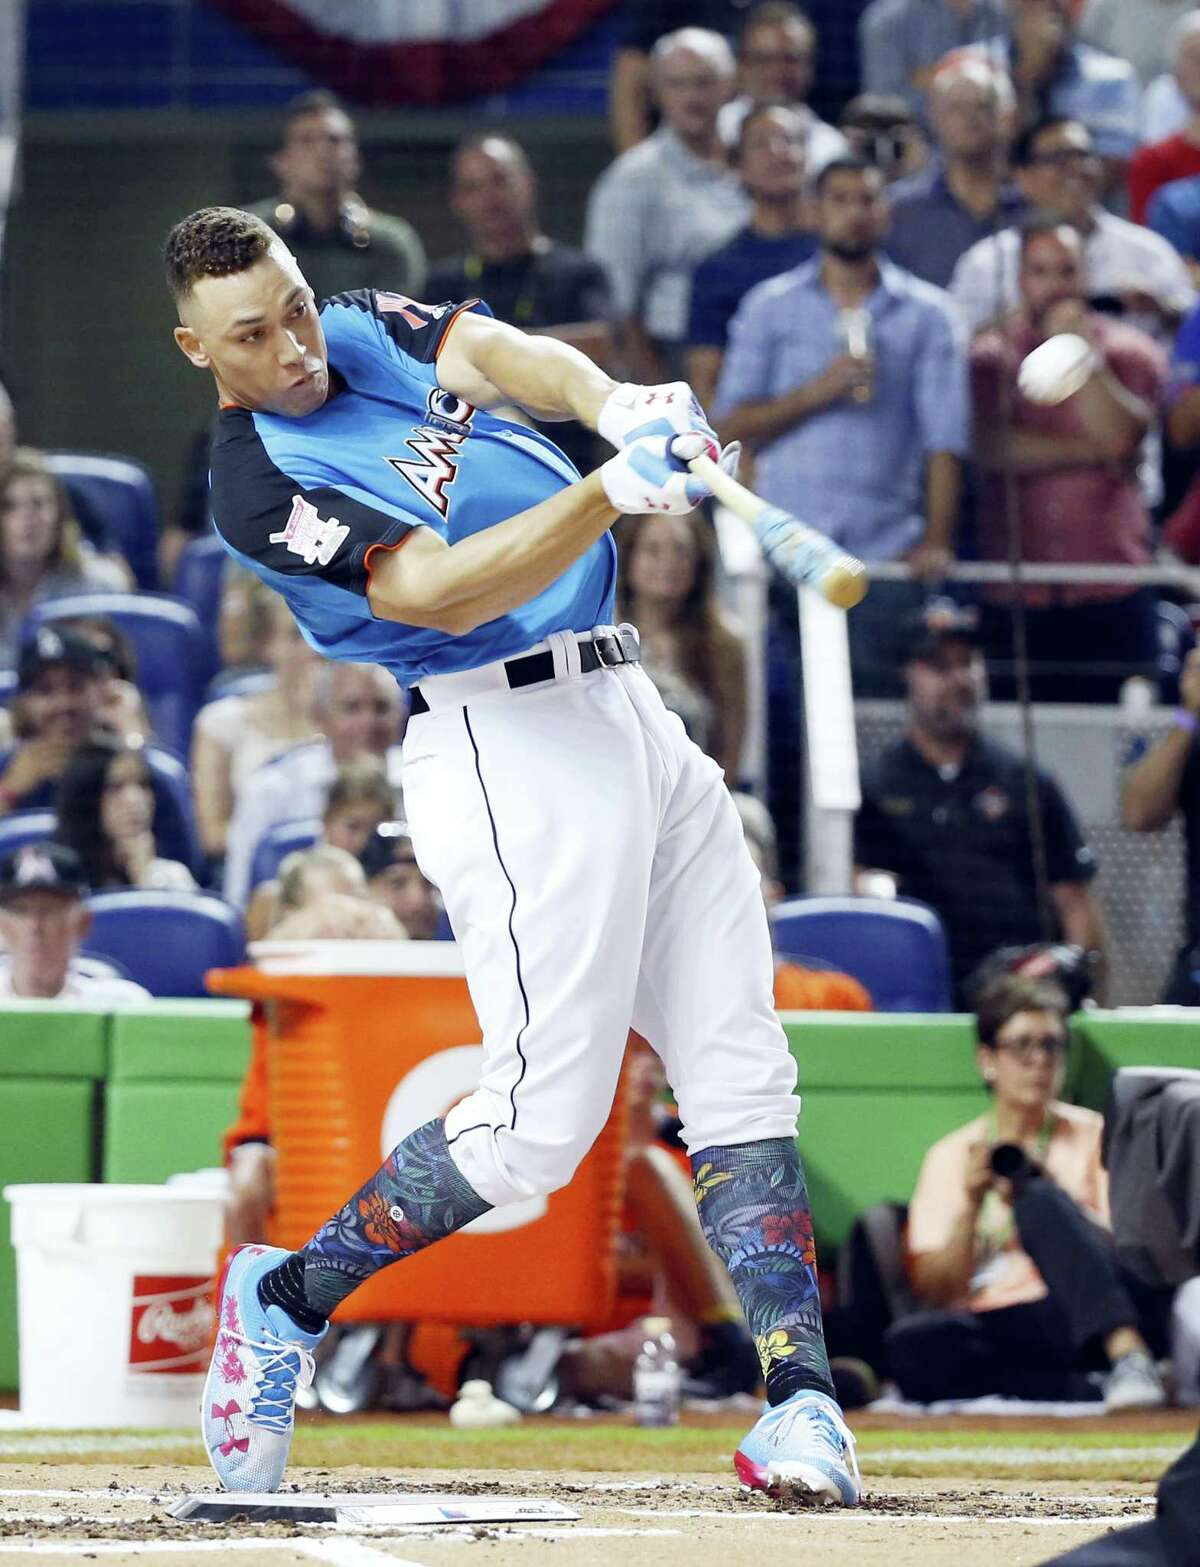 The Yankees' Aaron Judge competes in the Home Run Derby on Monday in Miami.